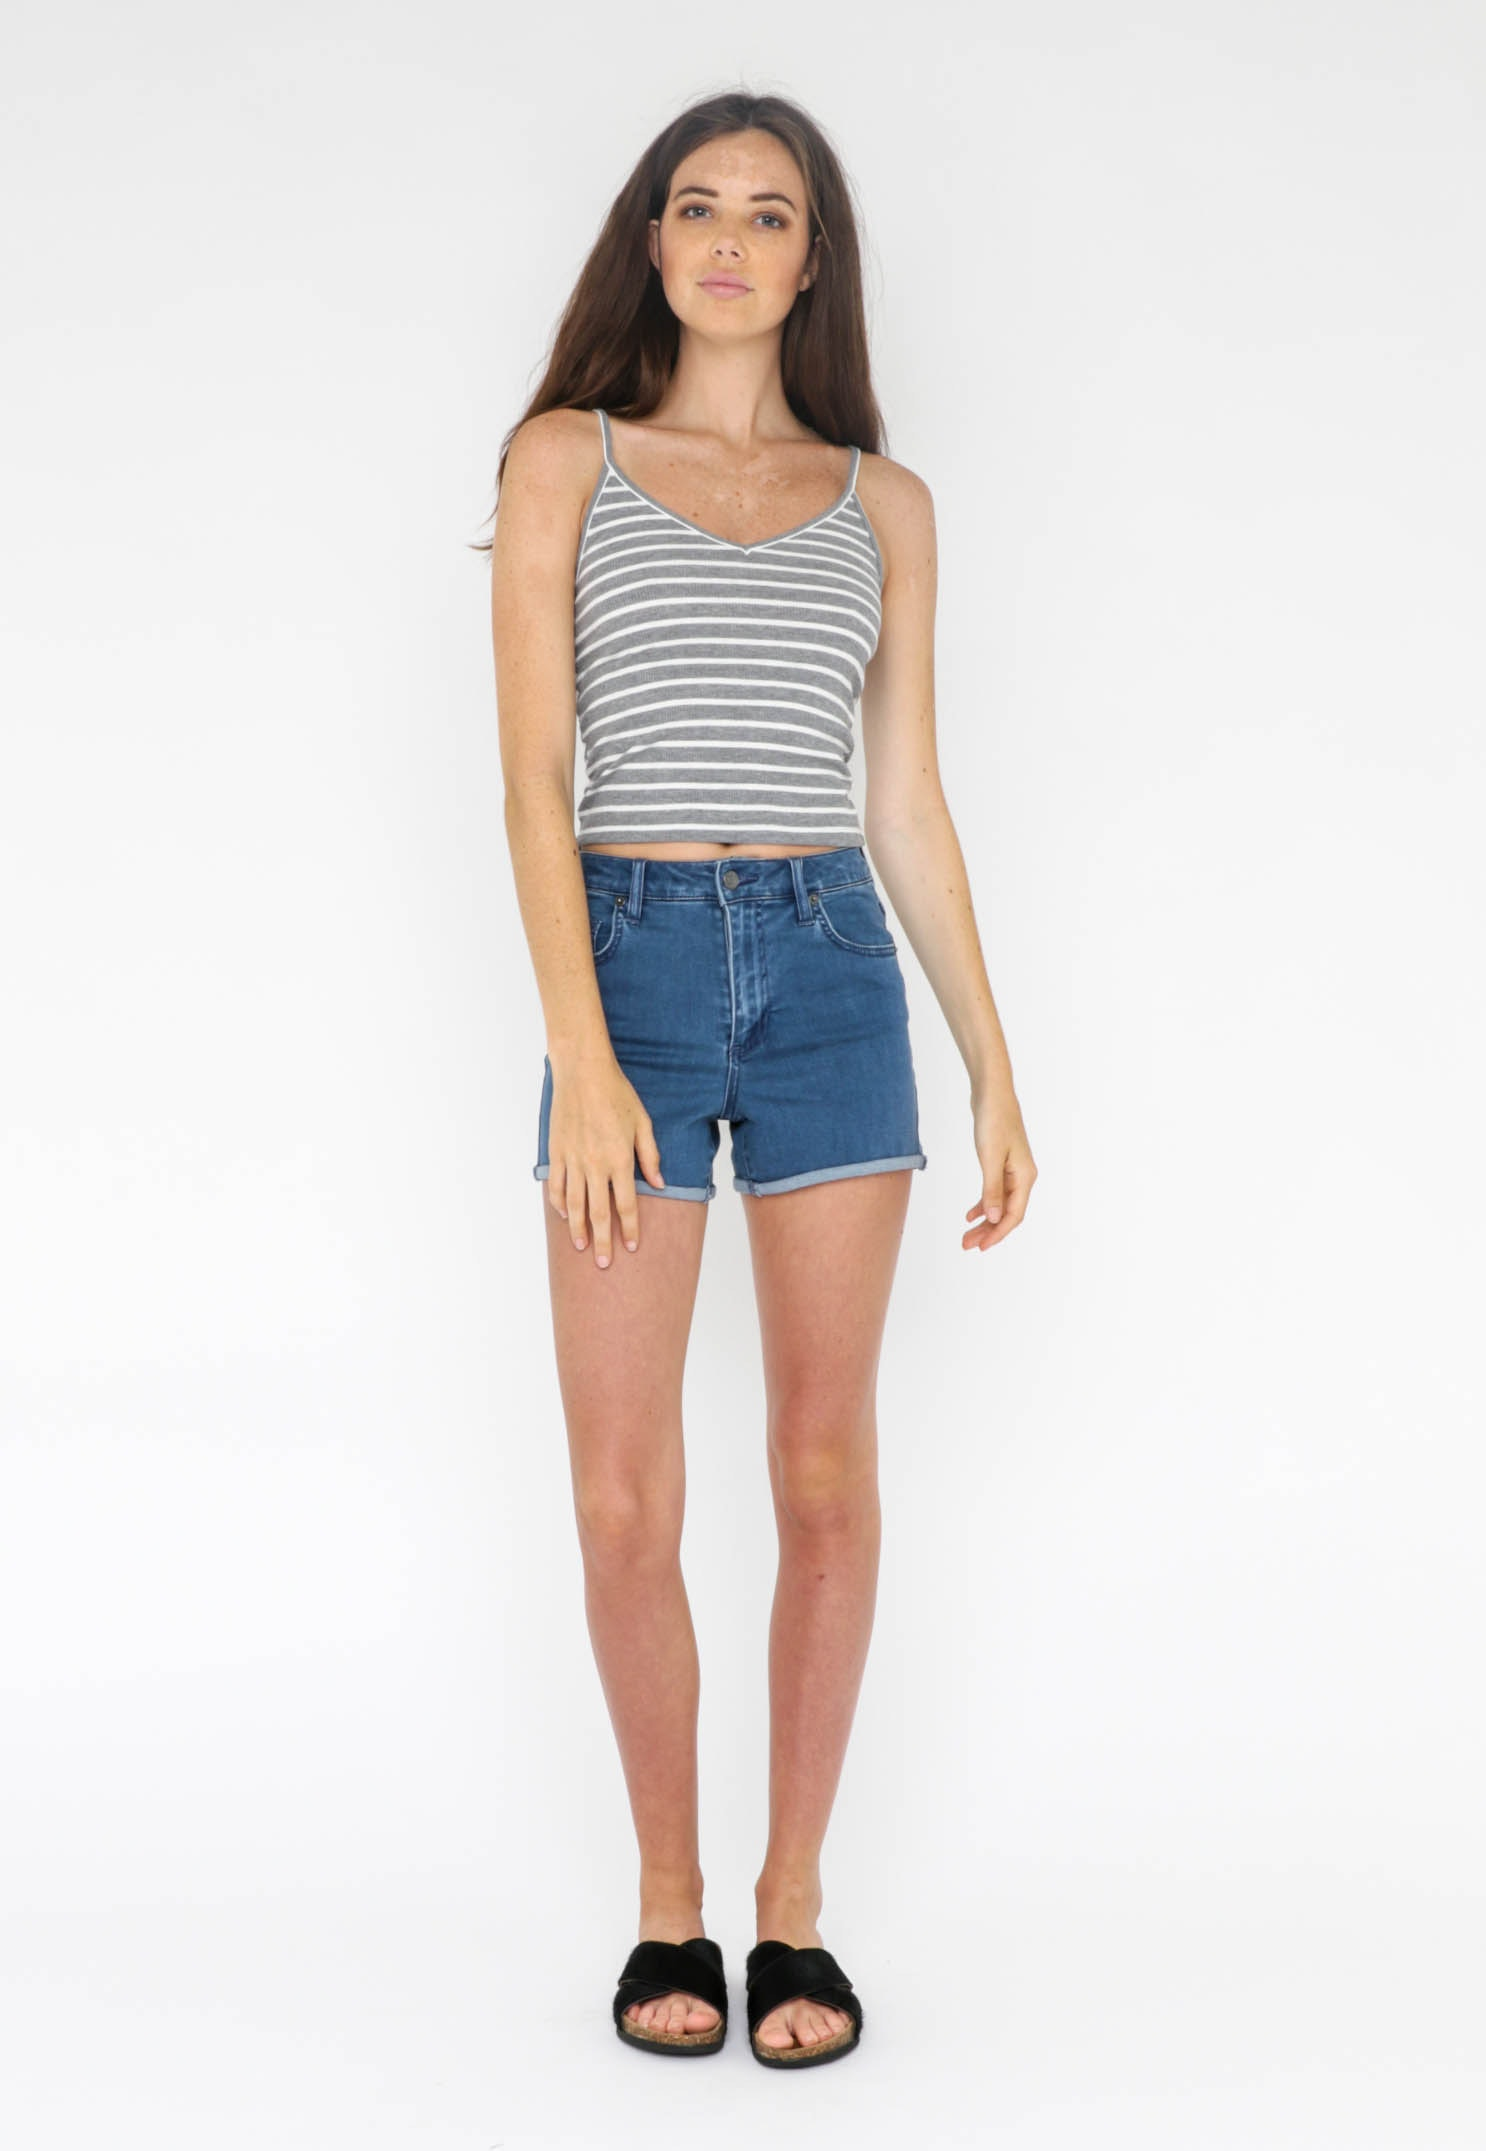 All About Eve  - Chain Reaction Crop Tank - Grey Marle/White Stripe